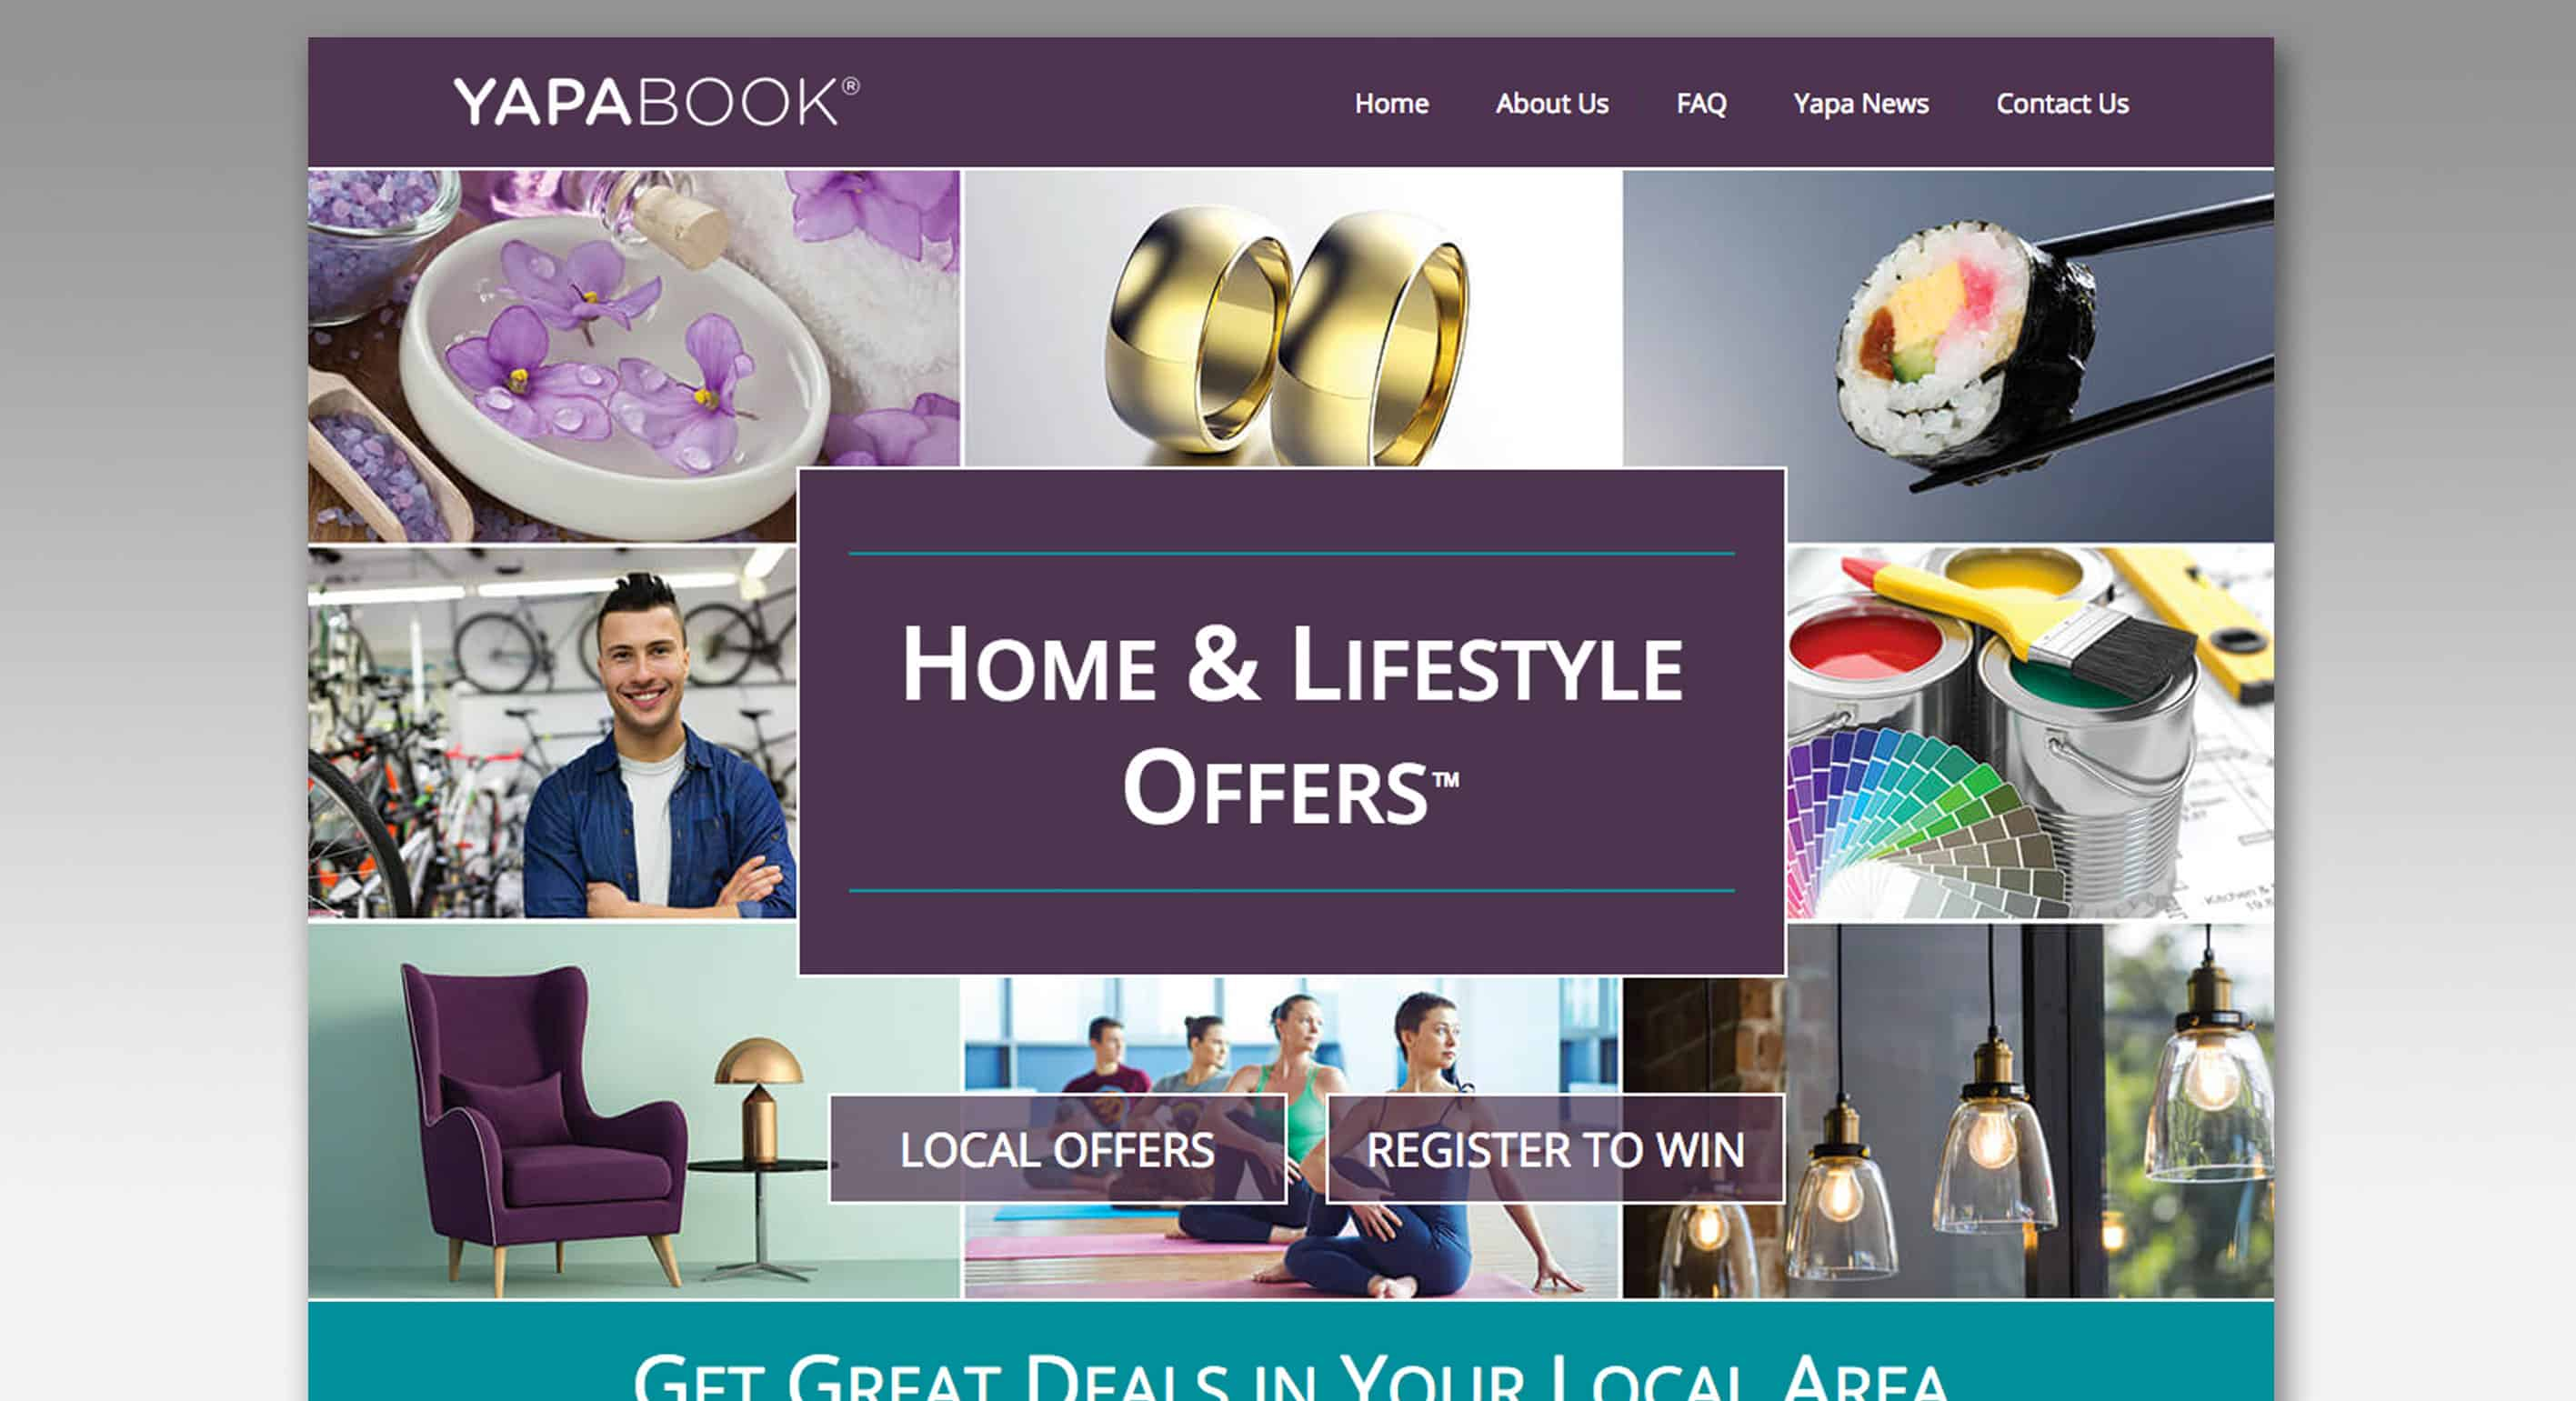 Yapabook Home & Lifestyle Offers